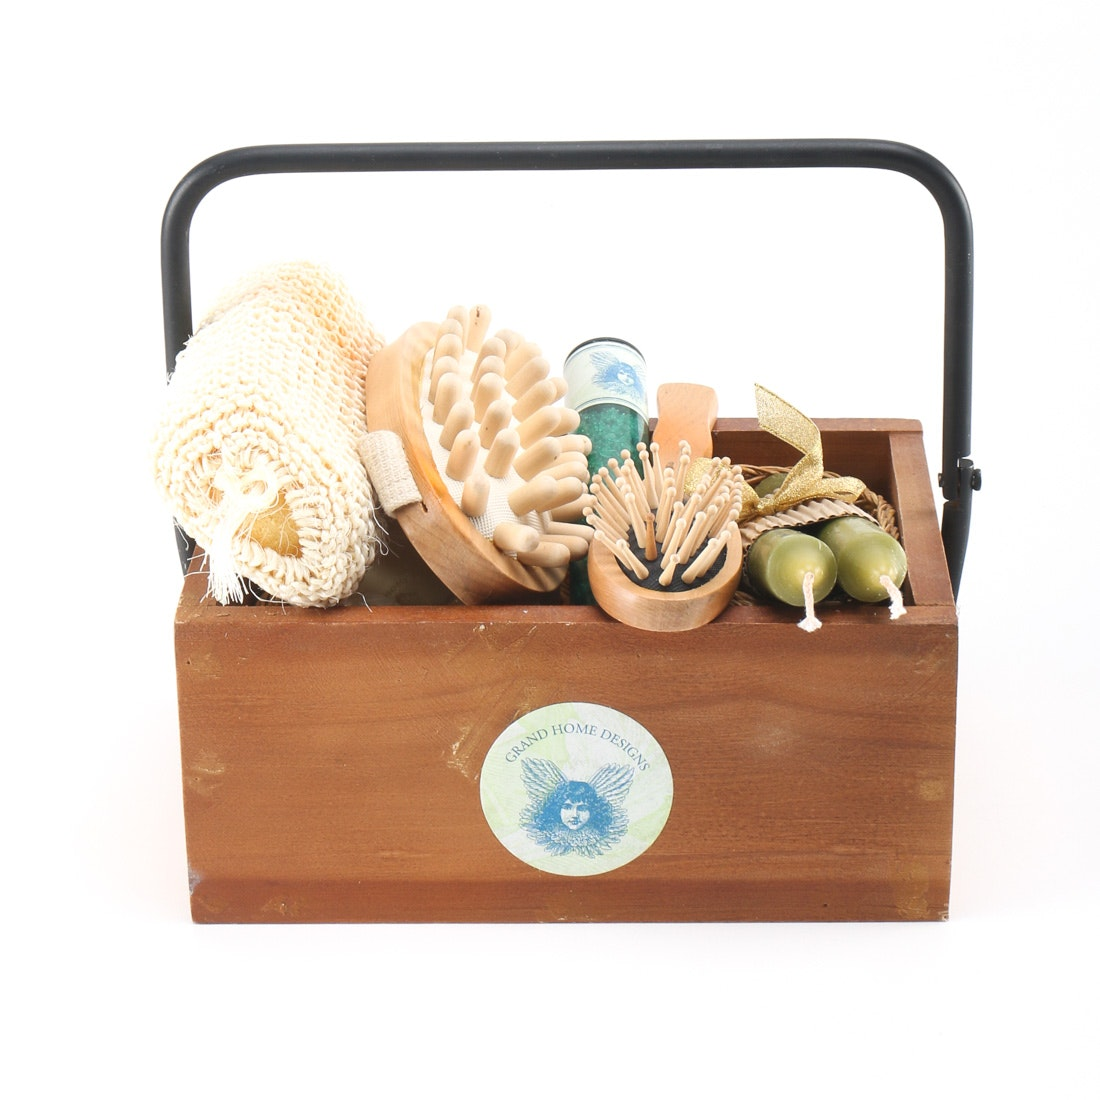 Wooden box with bathroom accessories ebth for C bhogilal bathroom accessories